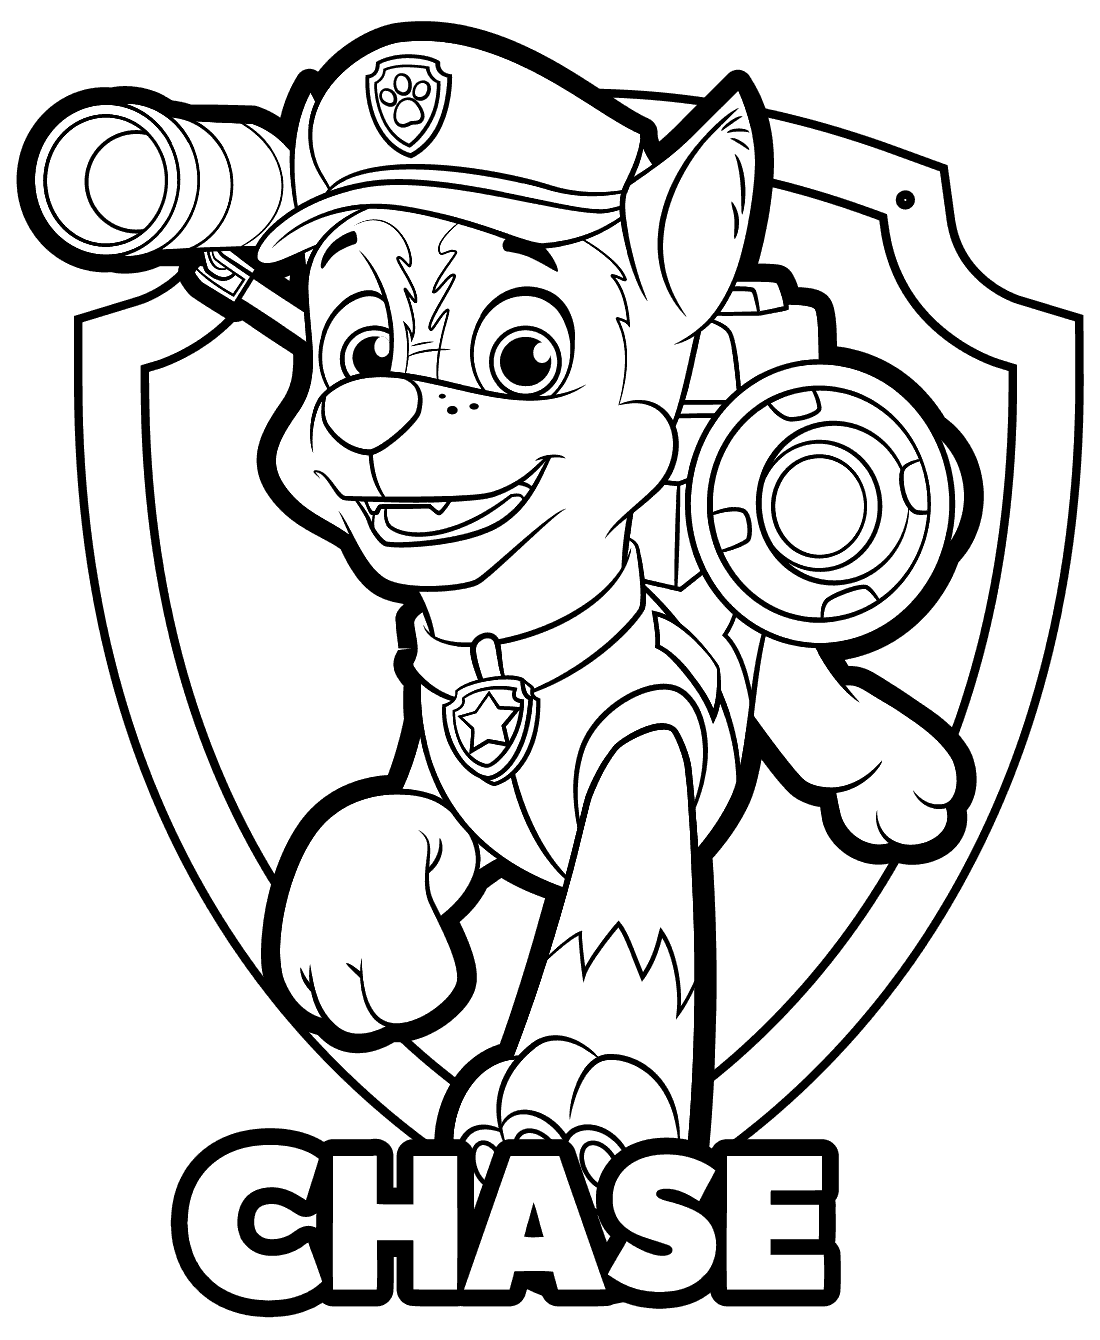 Ausmalbilder Paw Patrol Sky : Chase Paw Patrol Drawing At Getdrawings Com Free For Personal Use